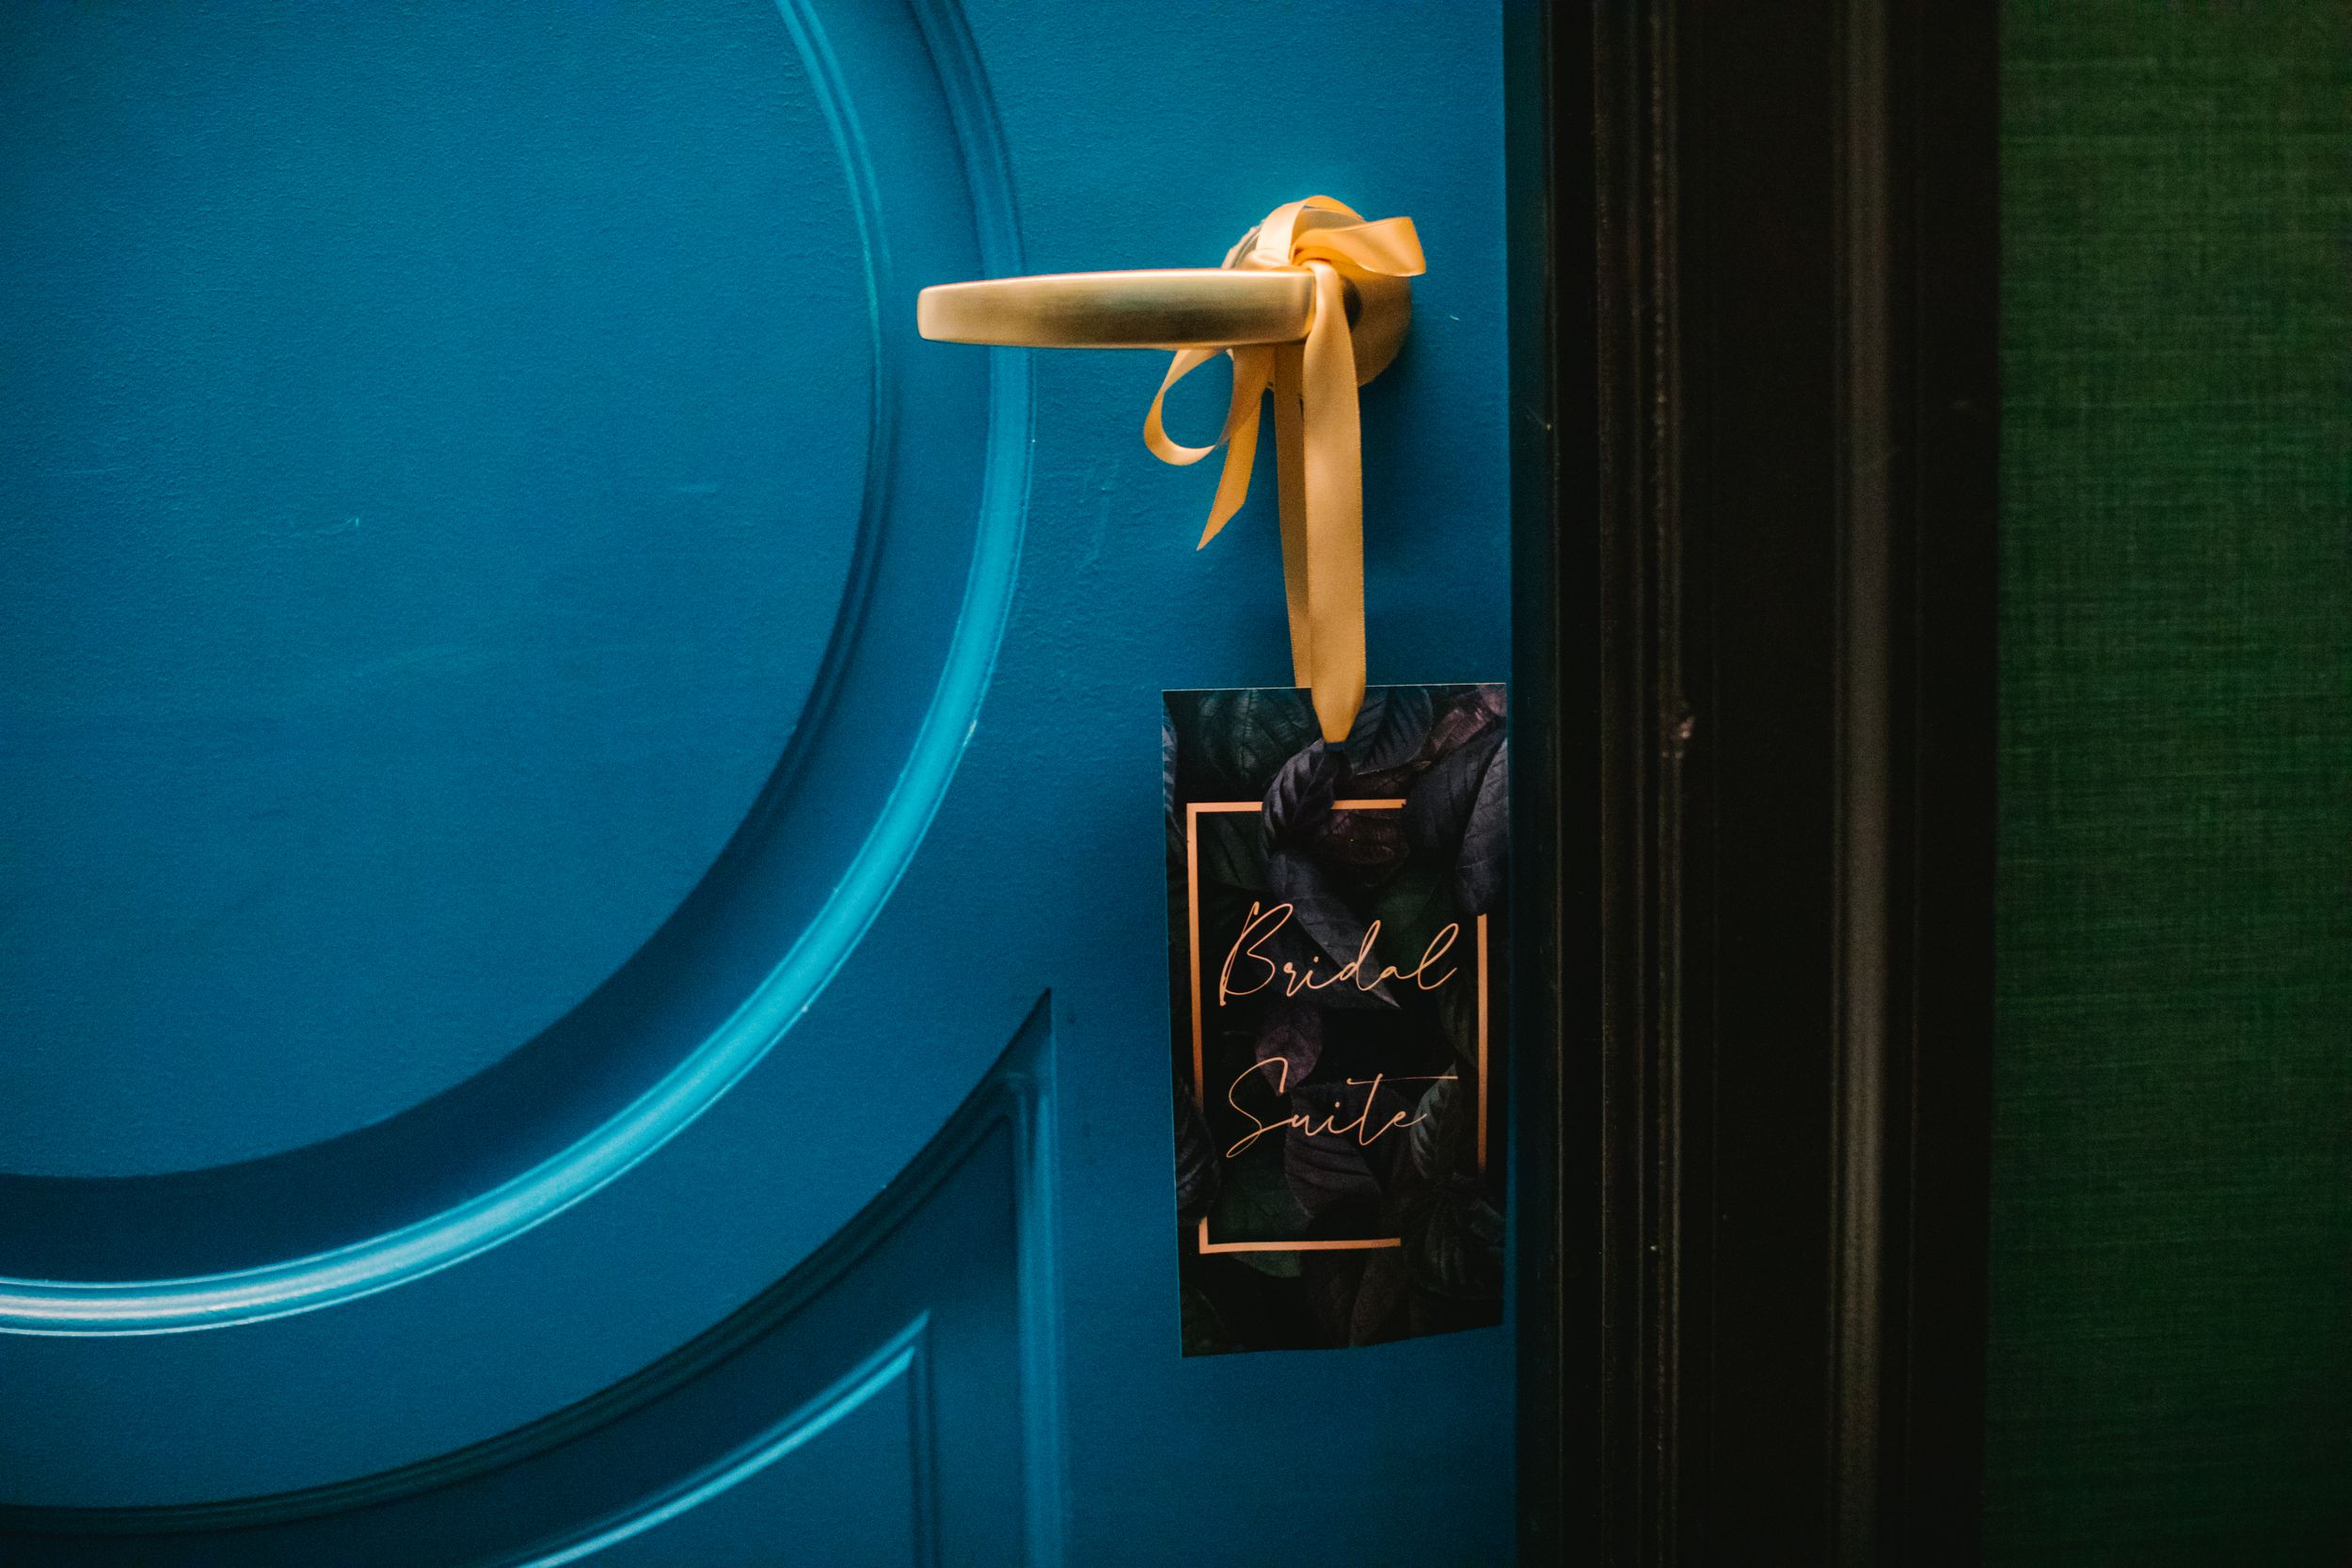 blue door with black bridal suite sign on it